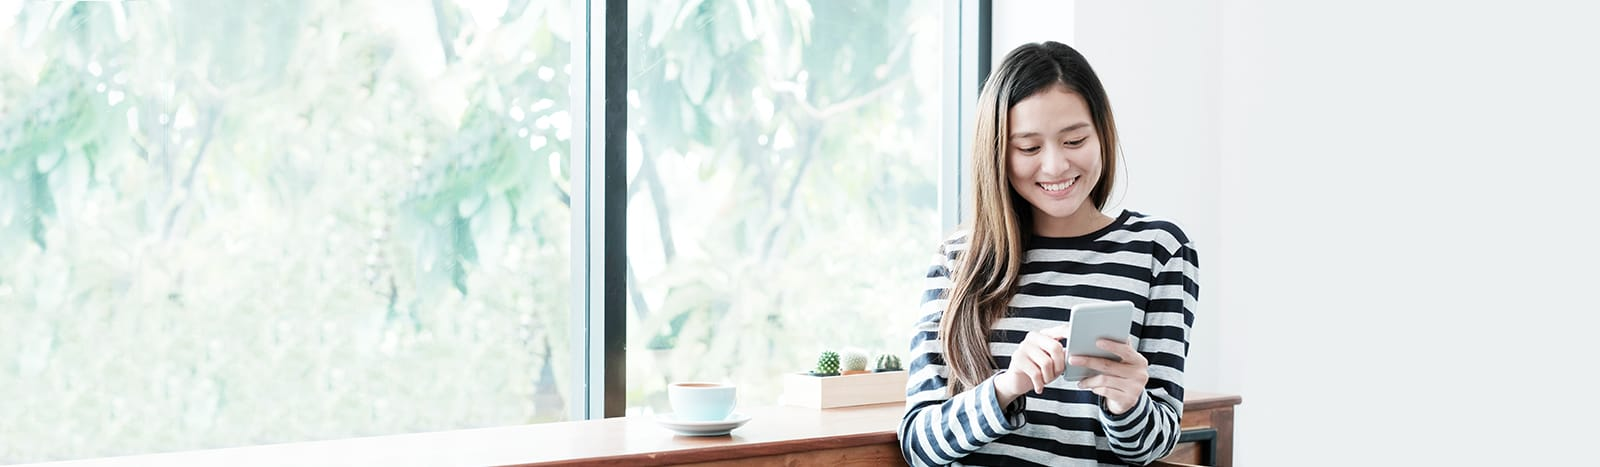 Asian woman sitting on window ledge looking at mobile device